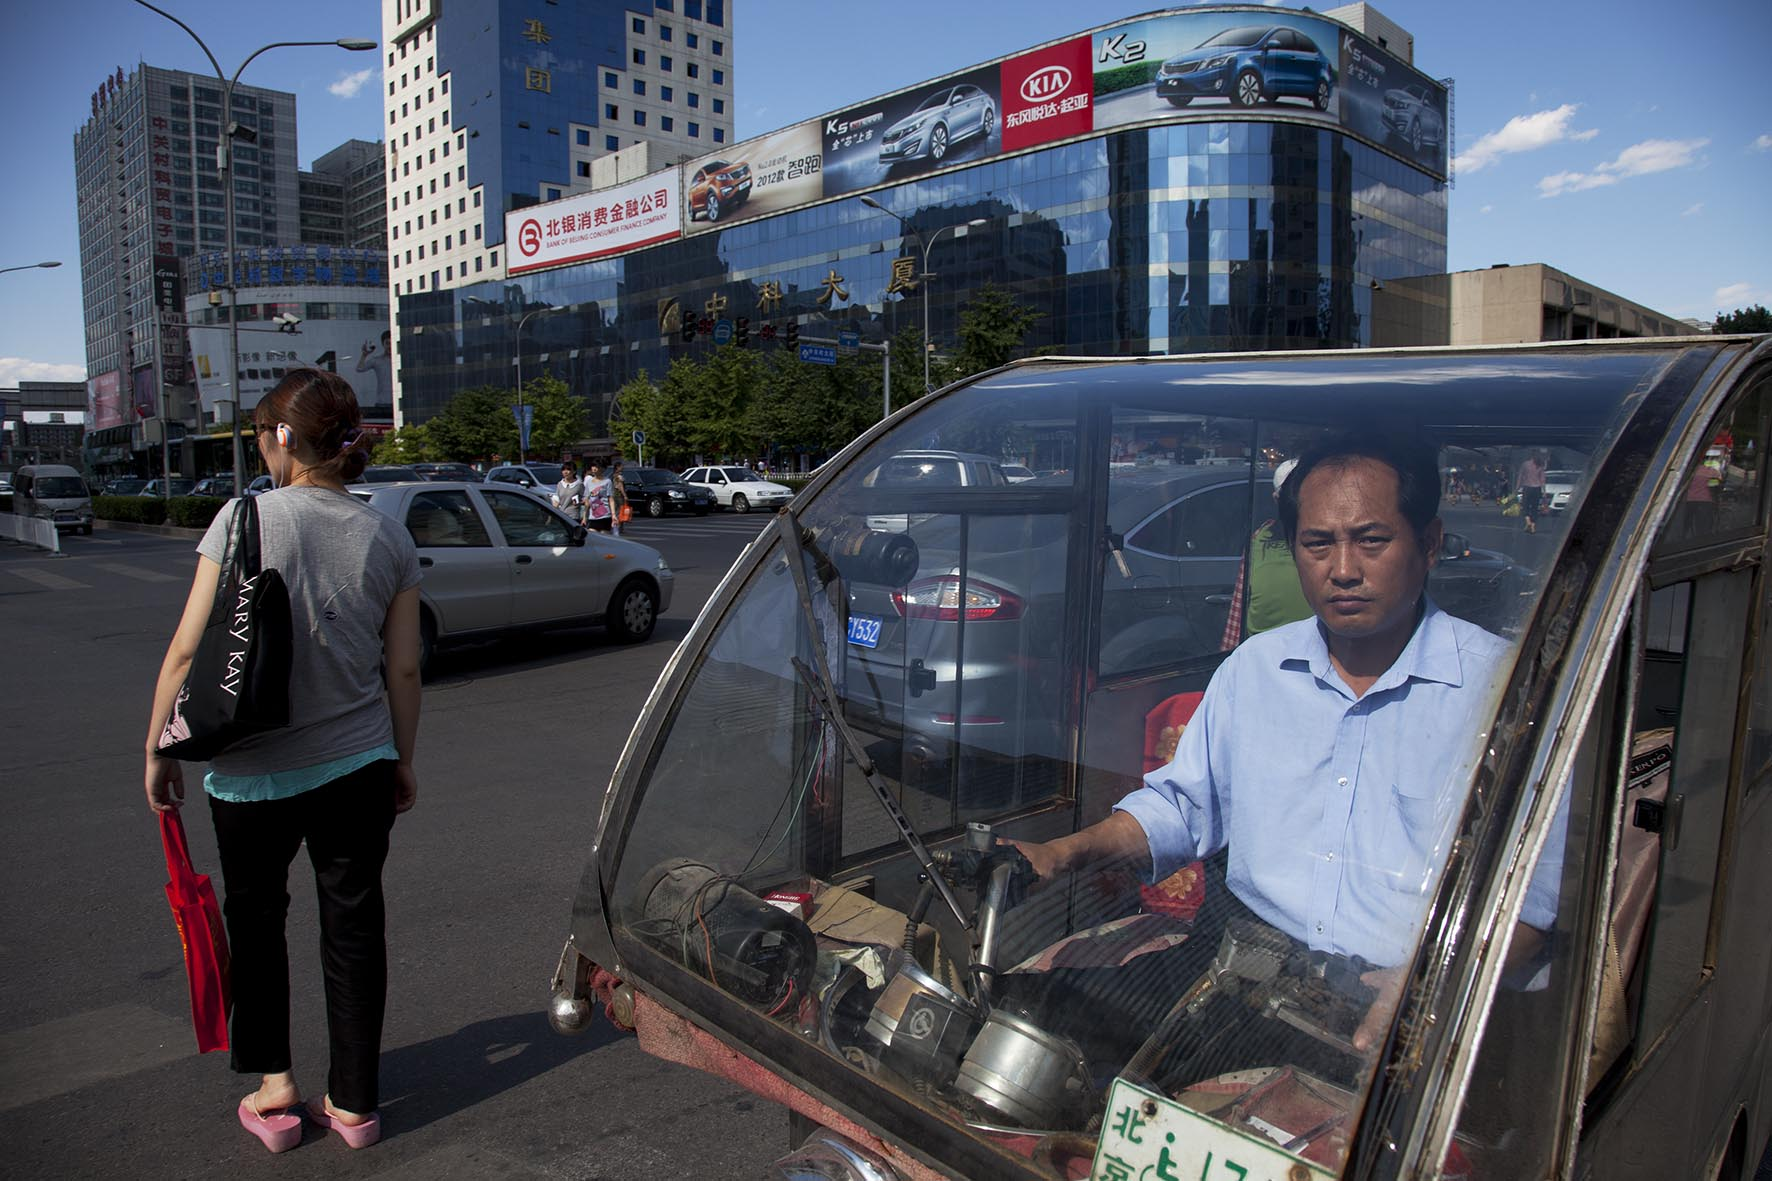 Transport worker passing the shopping malls and offices in Zhongguancun.